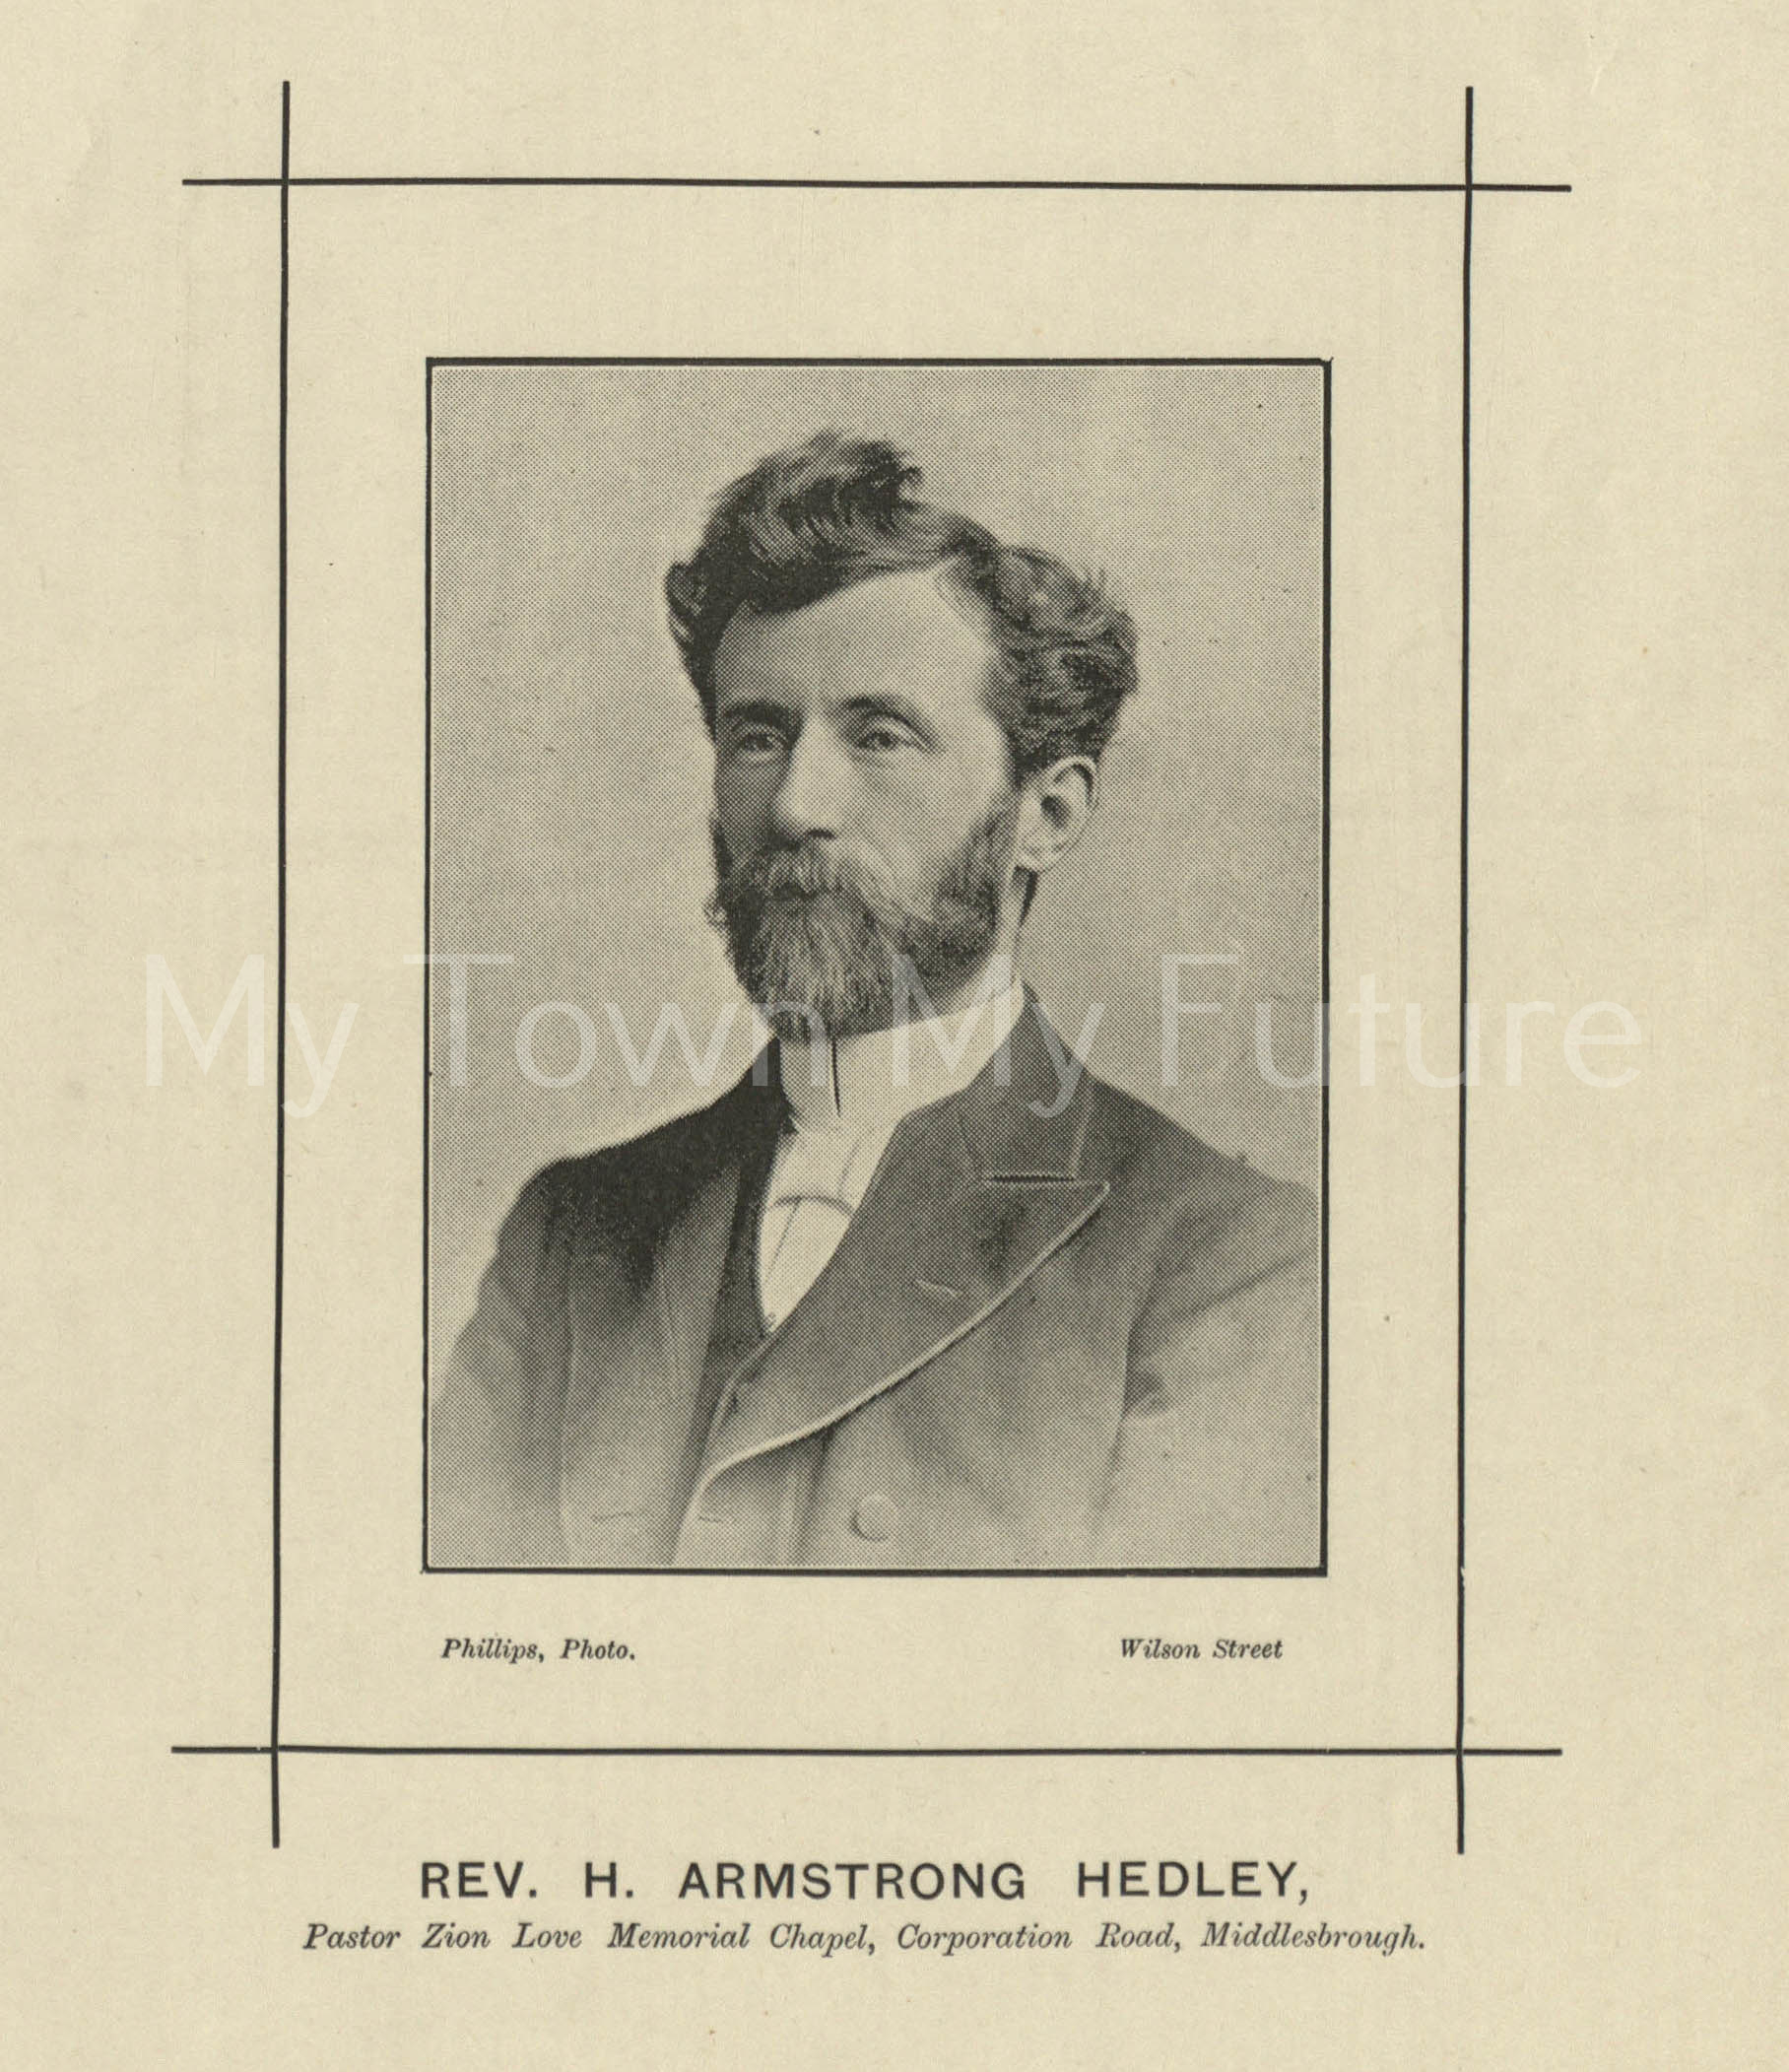 Rev H. Armstrong Hedley